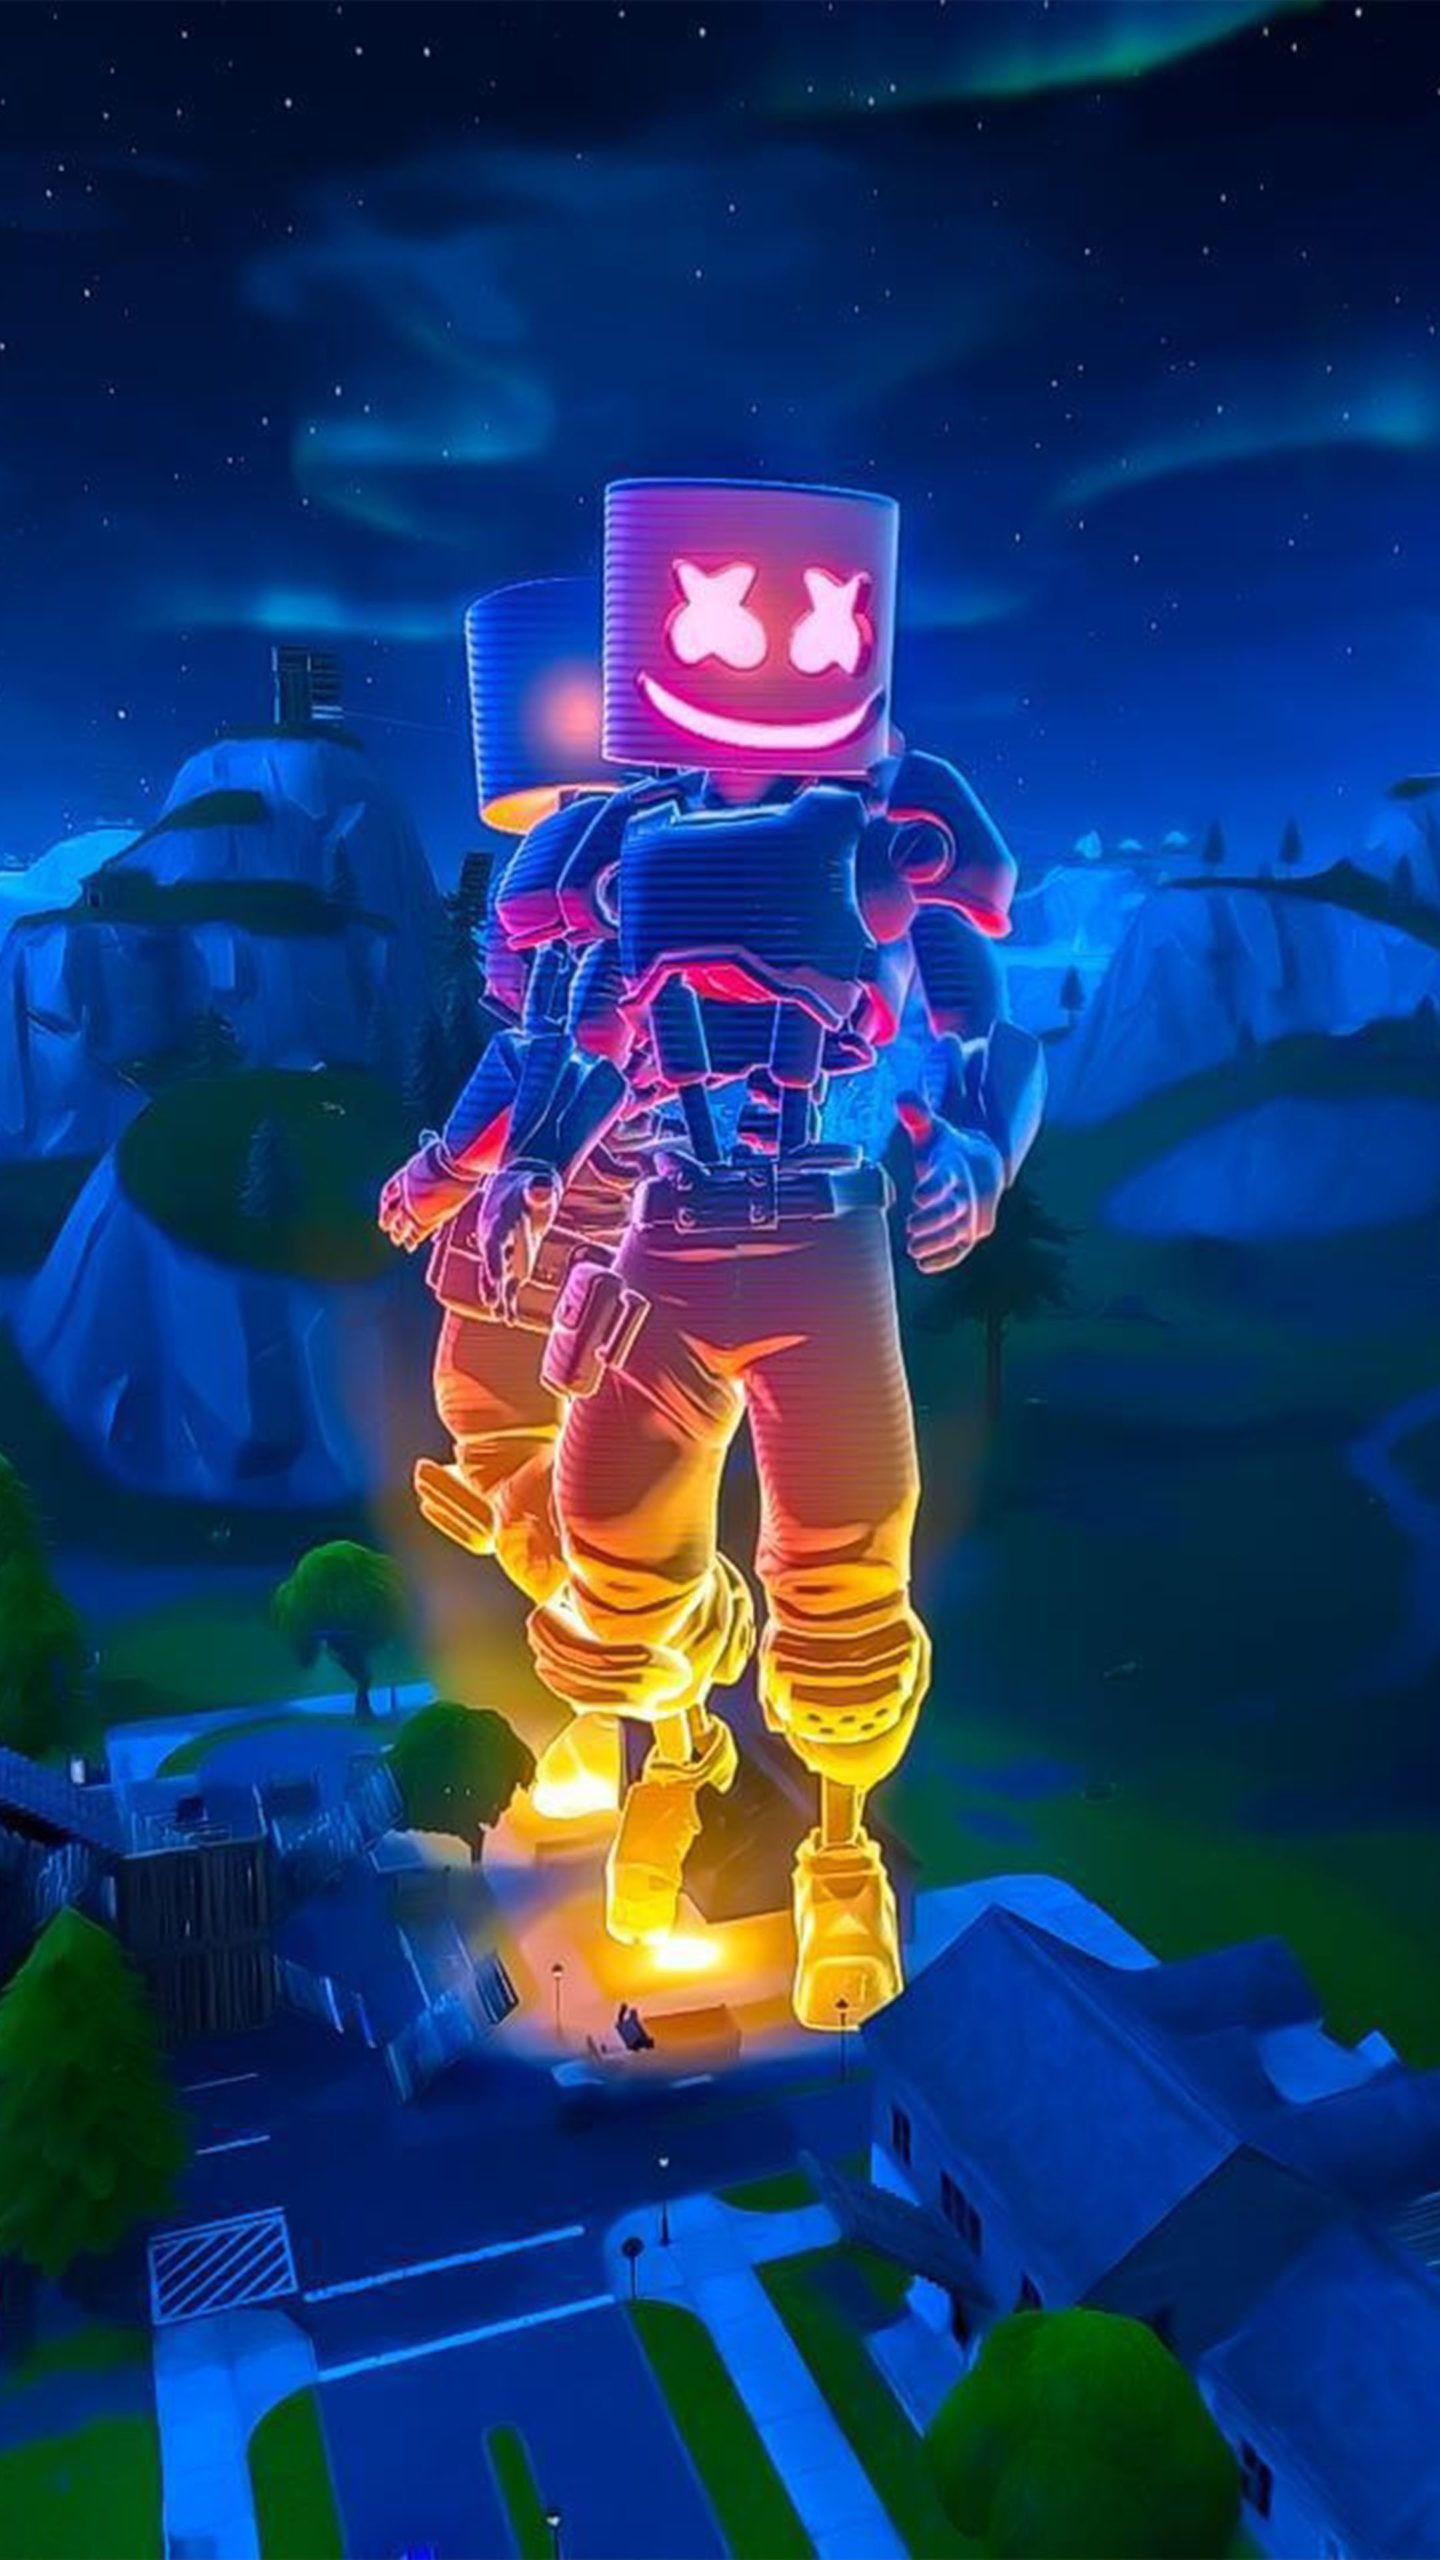 30 Fortnite Wallpaper Hd Phone Backgrounds For Iphone Android Lock Screen Characters Skins Art Best Gaming Wallpapers Gaming Wallpapers Laptop Wallpaper